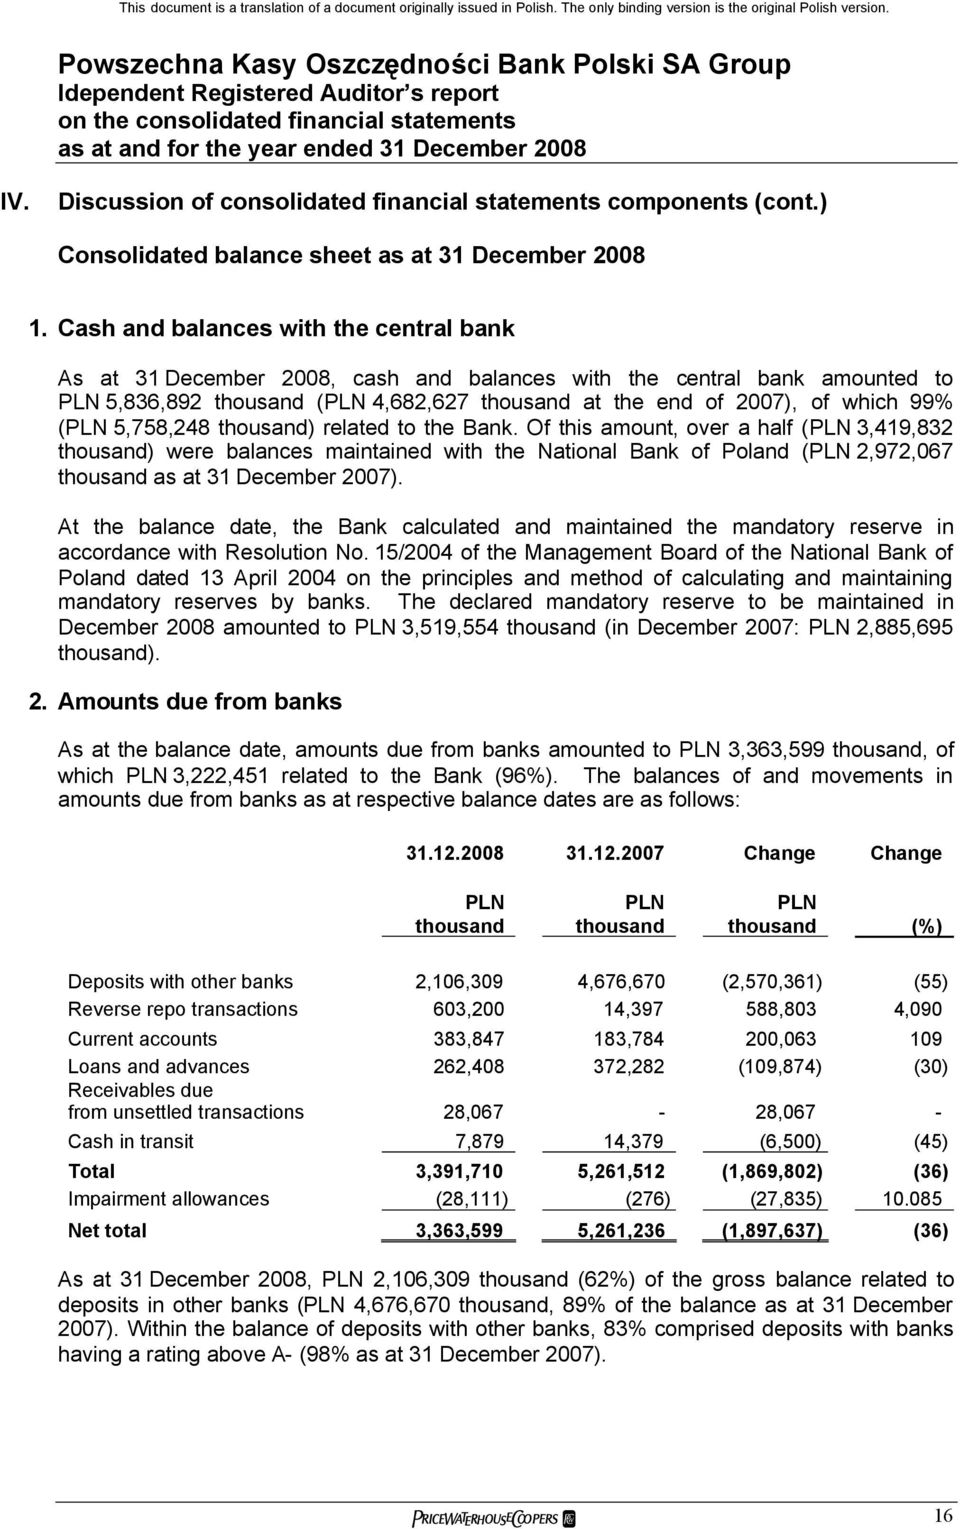 the Bank. Of this amount, over a half ( 3,419,832 ) were balances maintained with the National Bank of Poland ( 2,972,067 as at 31 December 2007).